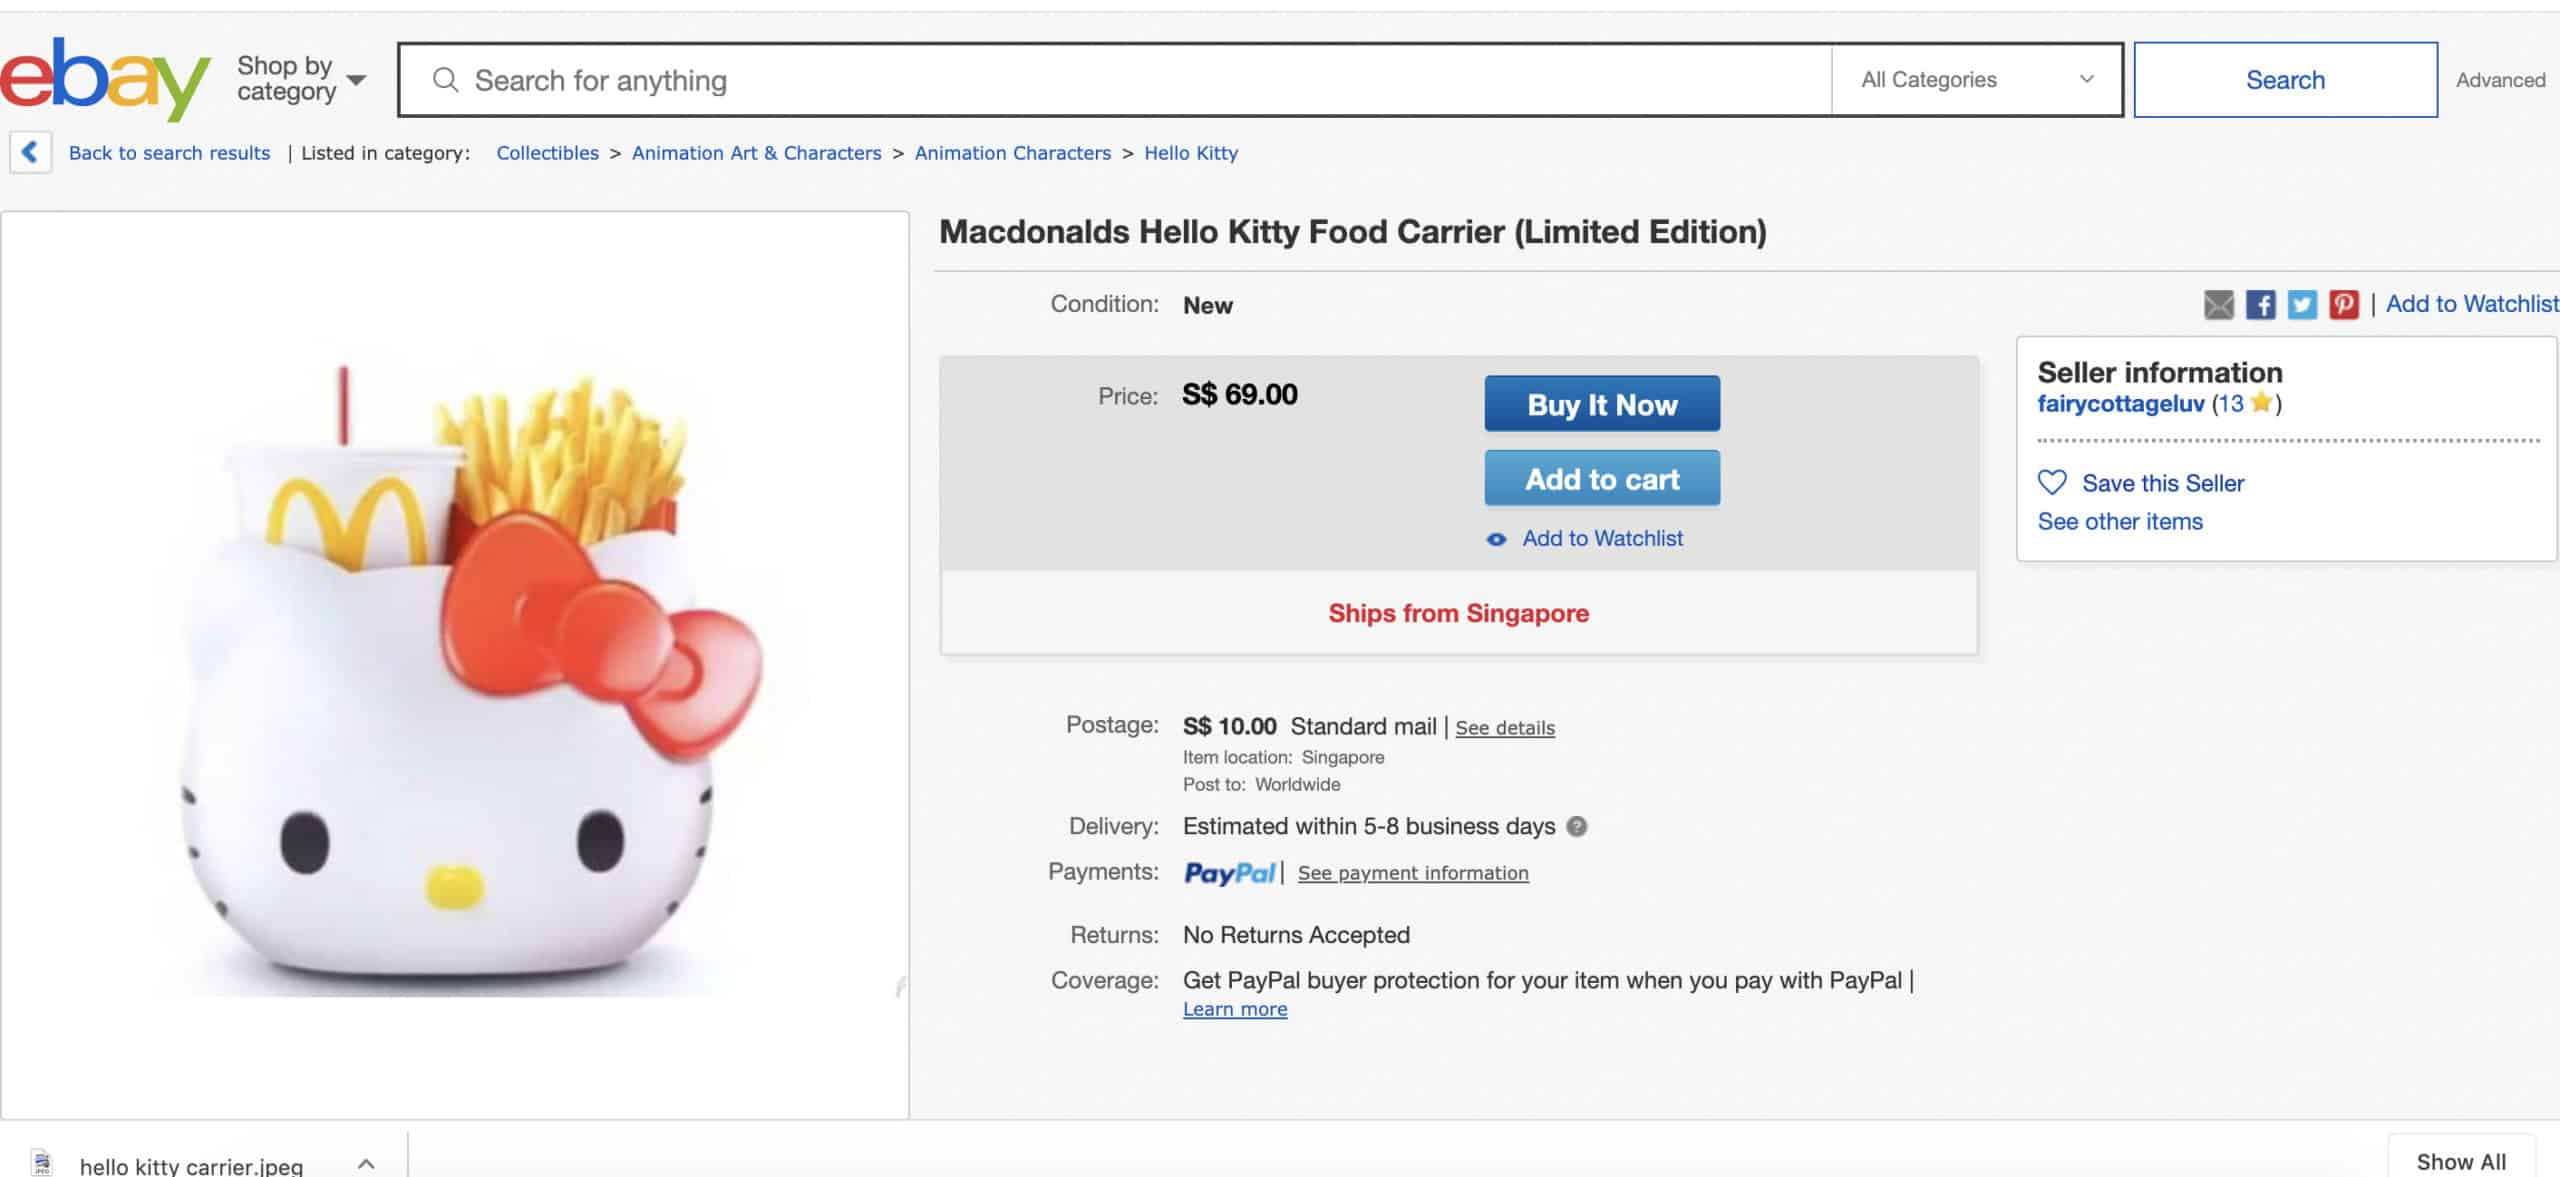 Selling My McDonald's Hello Kitty Collection: How Much Can These Toys Earn?